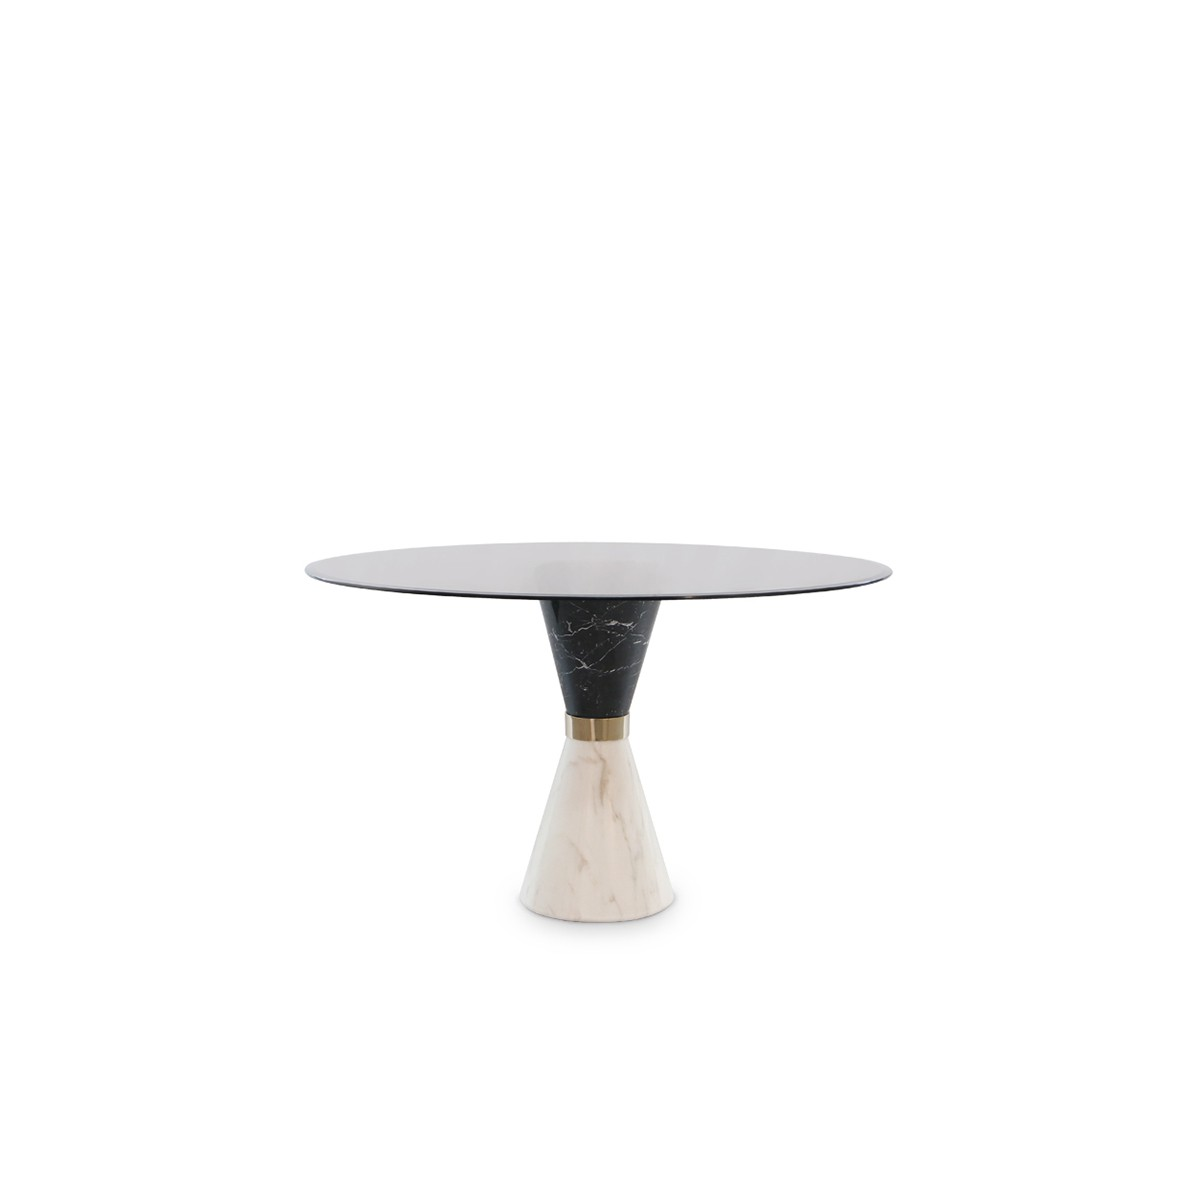 Covet Outlet: New Dining Table Entries dining table Covet Outlet: New Dining Table Entries vinicius2